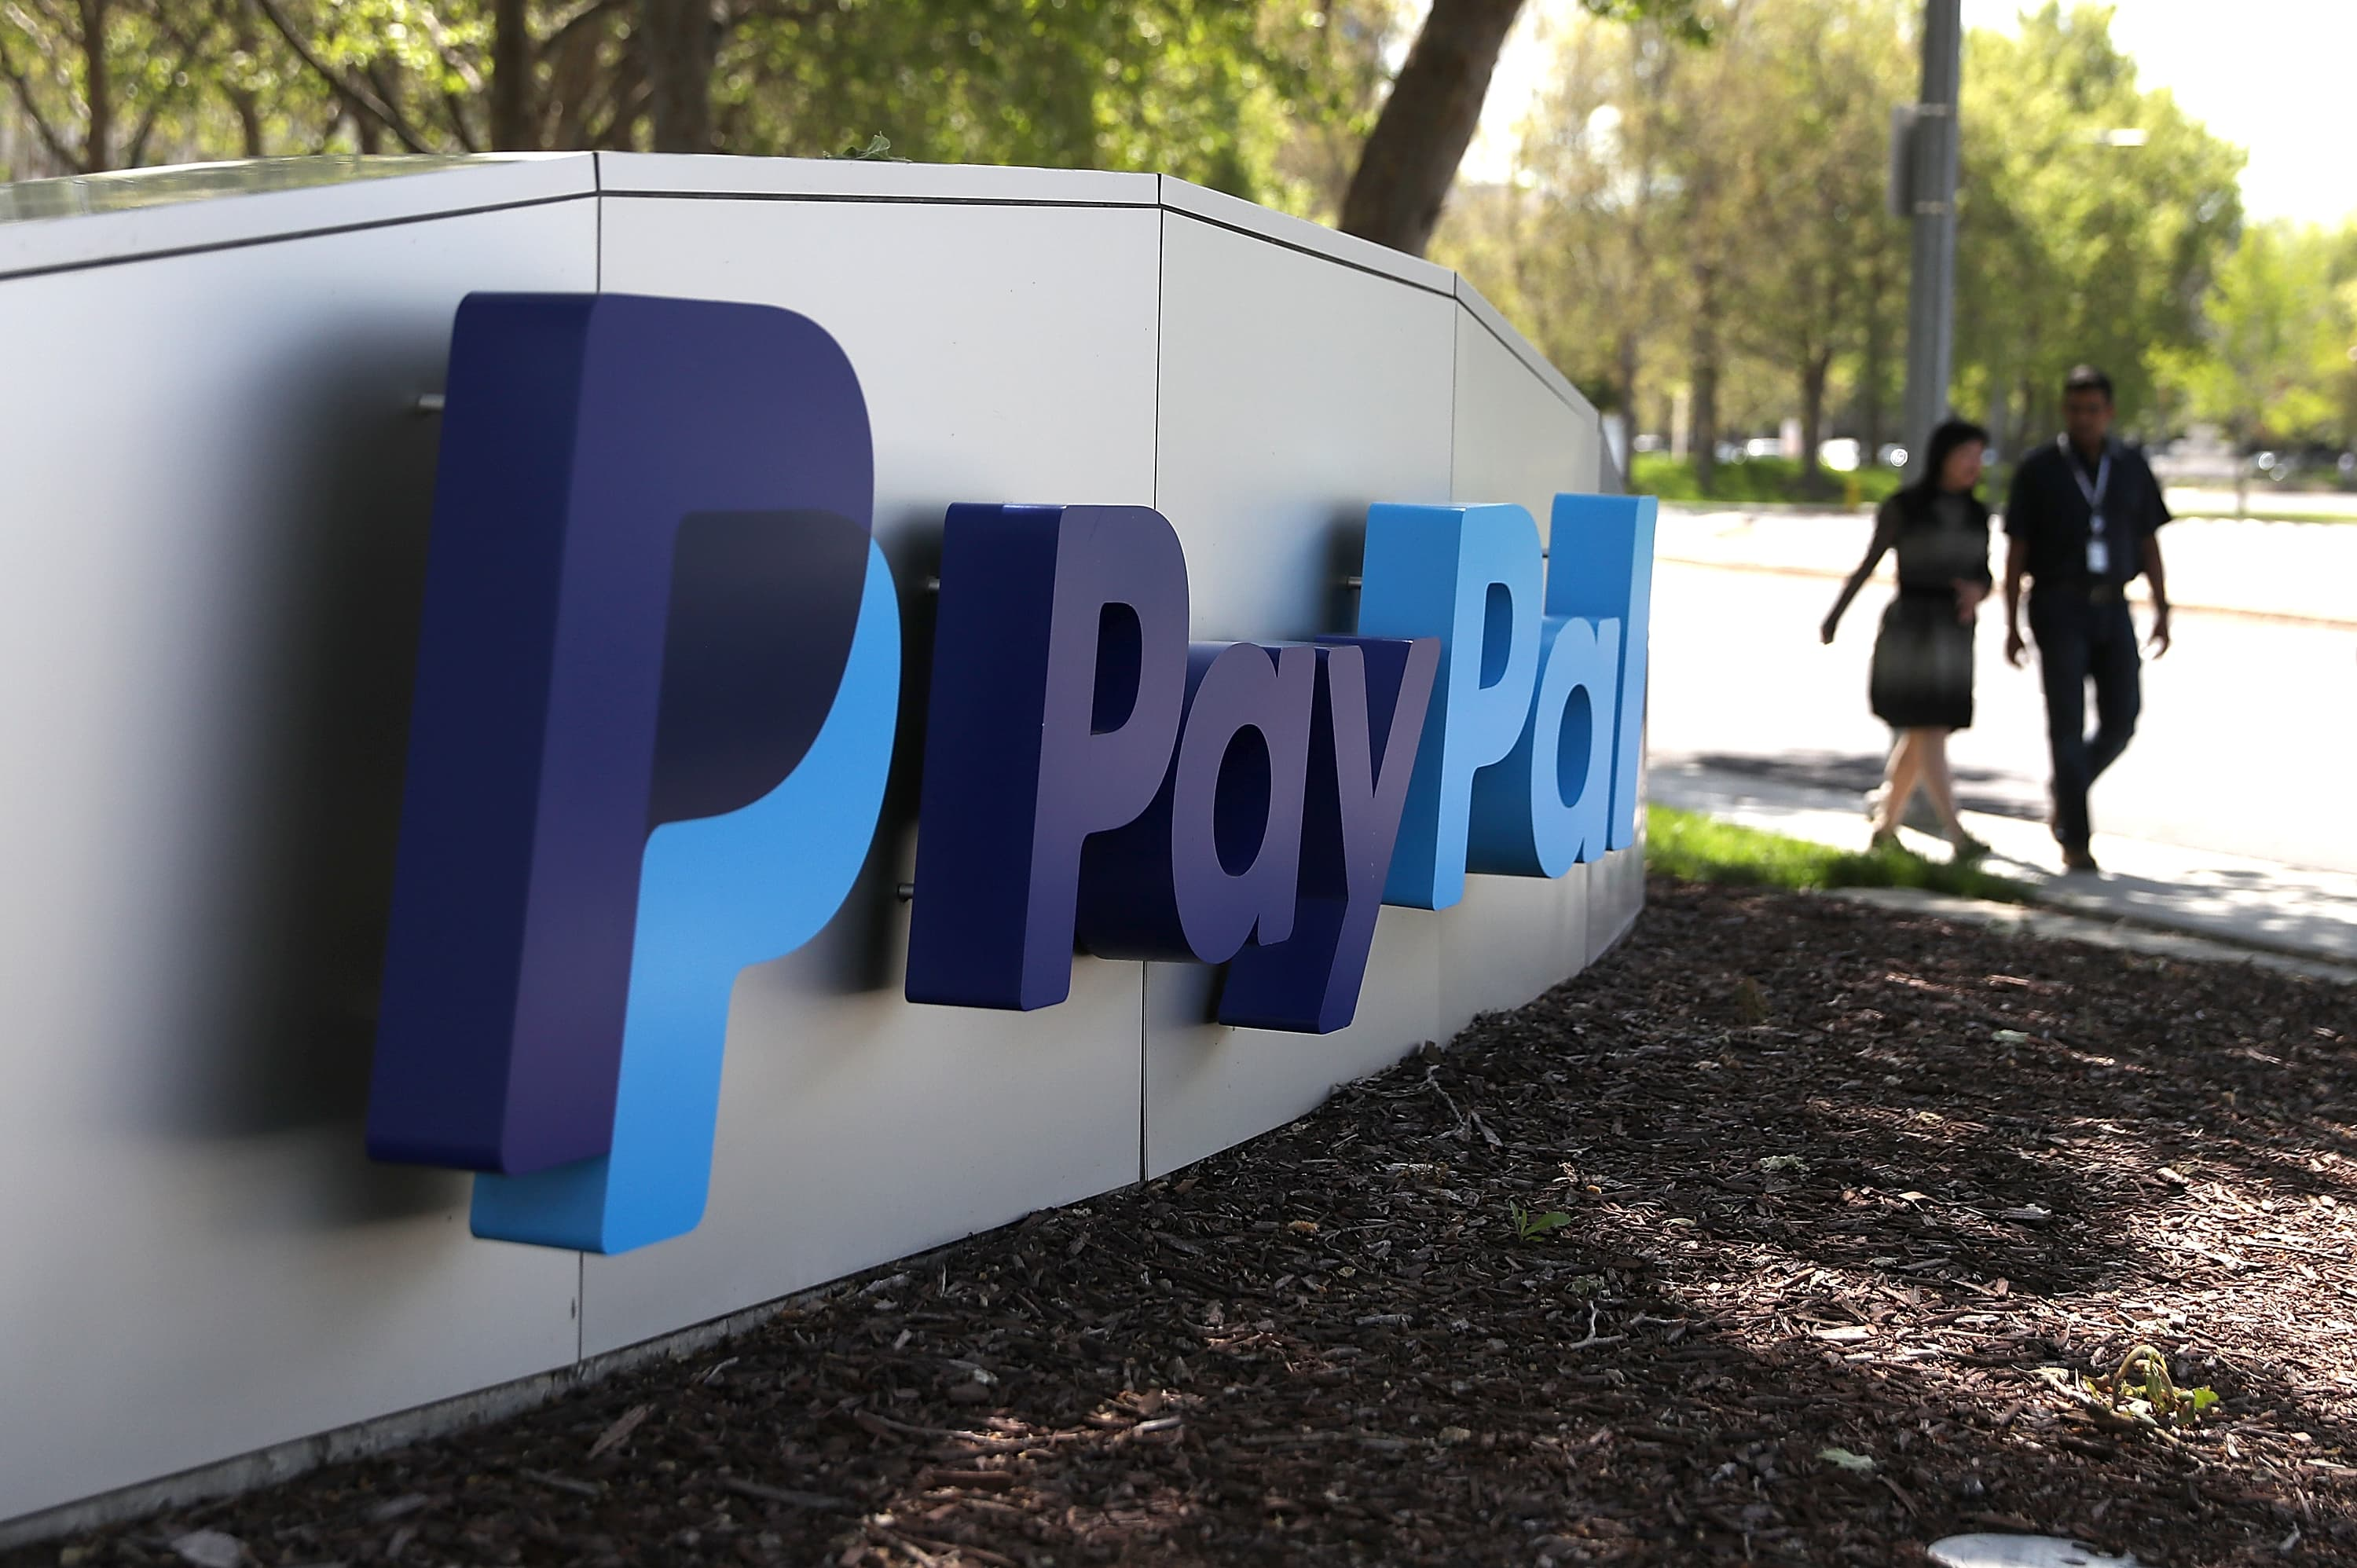 GS: PayPal signage 180409